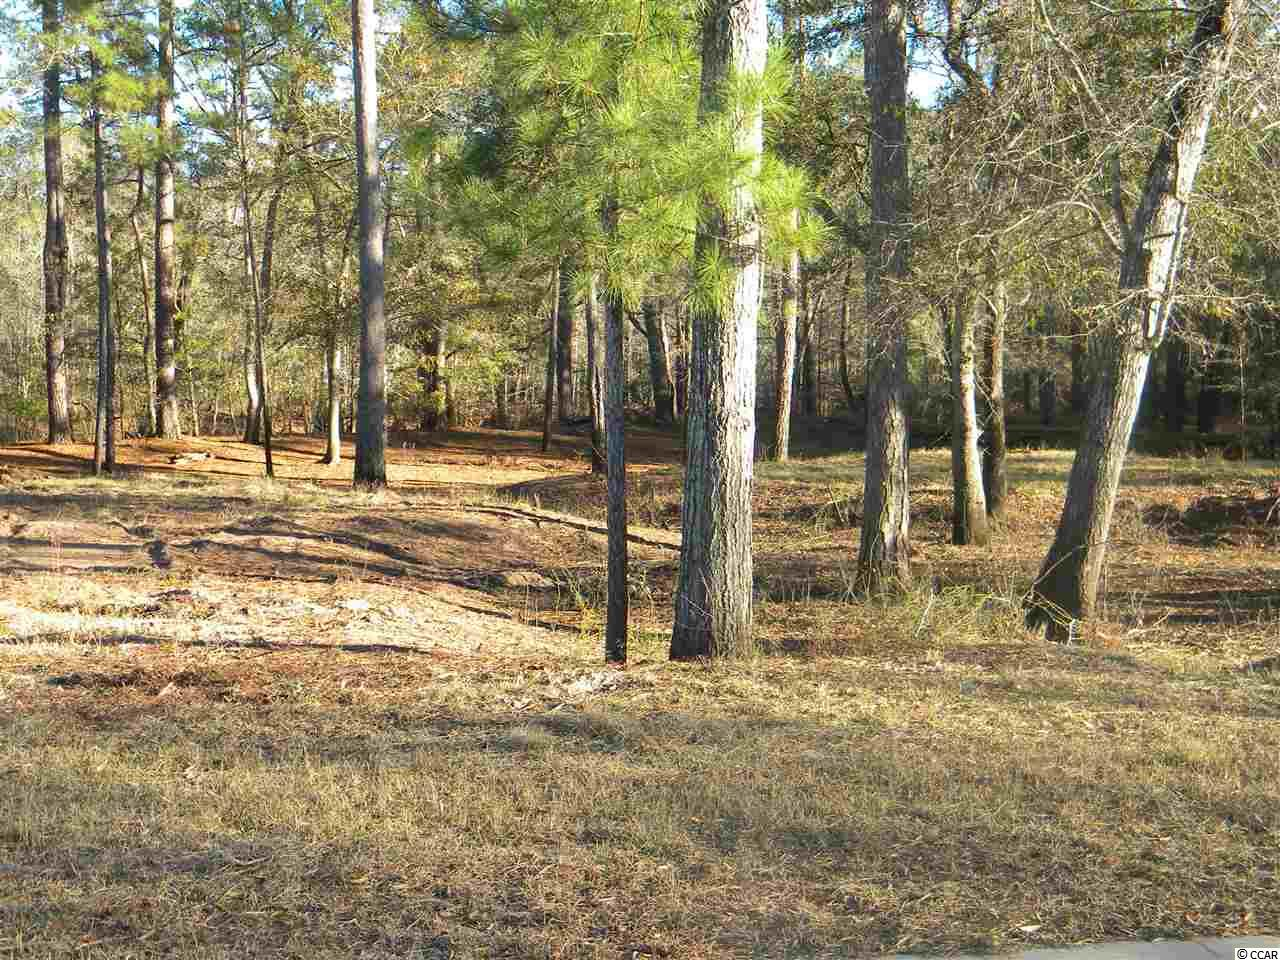 Beautiful river-front lot located in upscale Black Water Cove. Close to Conway and Highway 22 for access to the beach. Shaftsbury Glen golf course is a short walk. Build your dream home on the river with the builder of your choice. Riverside park with pavilion and community boat dock. This lot can be purchased with Lot 12, MLS #1823255, next to it making a total of .59 acres with 145' of riverfront.